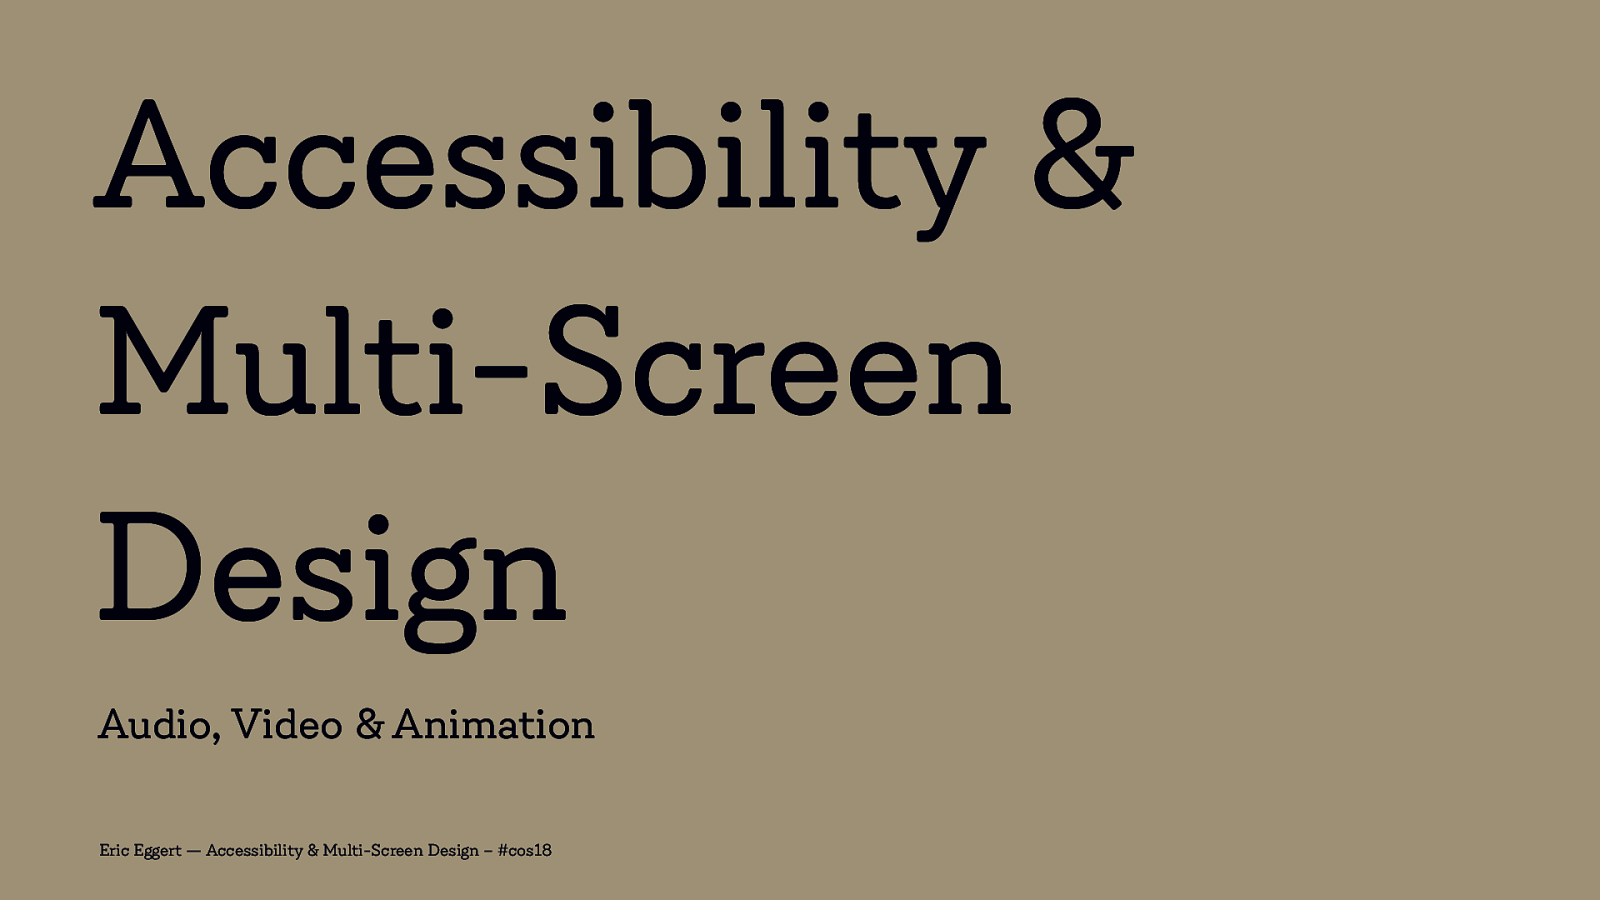 Accessibility & Multi-Screen Design: Audio, Video & Animation